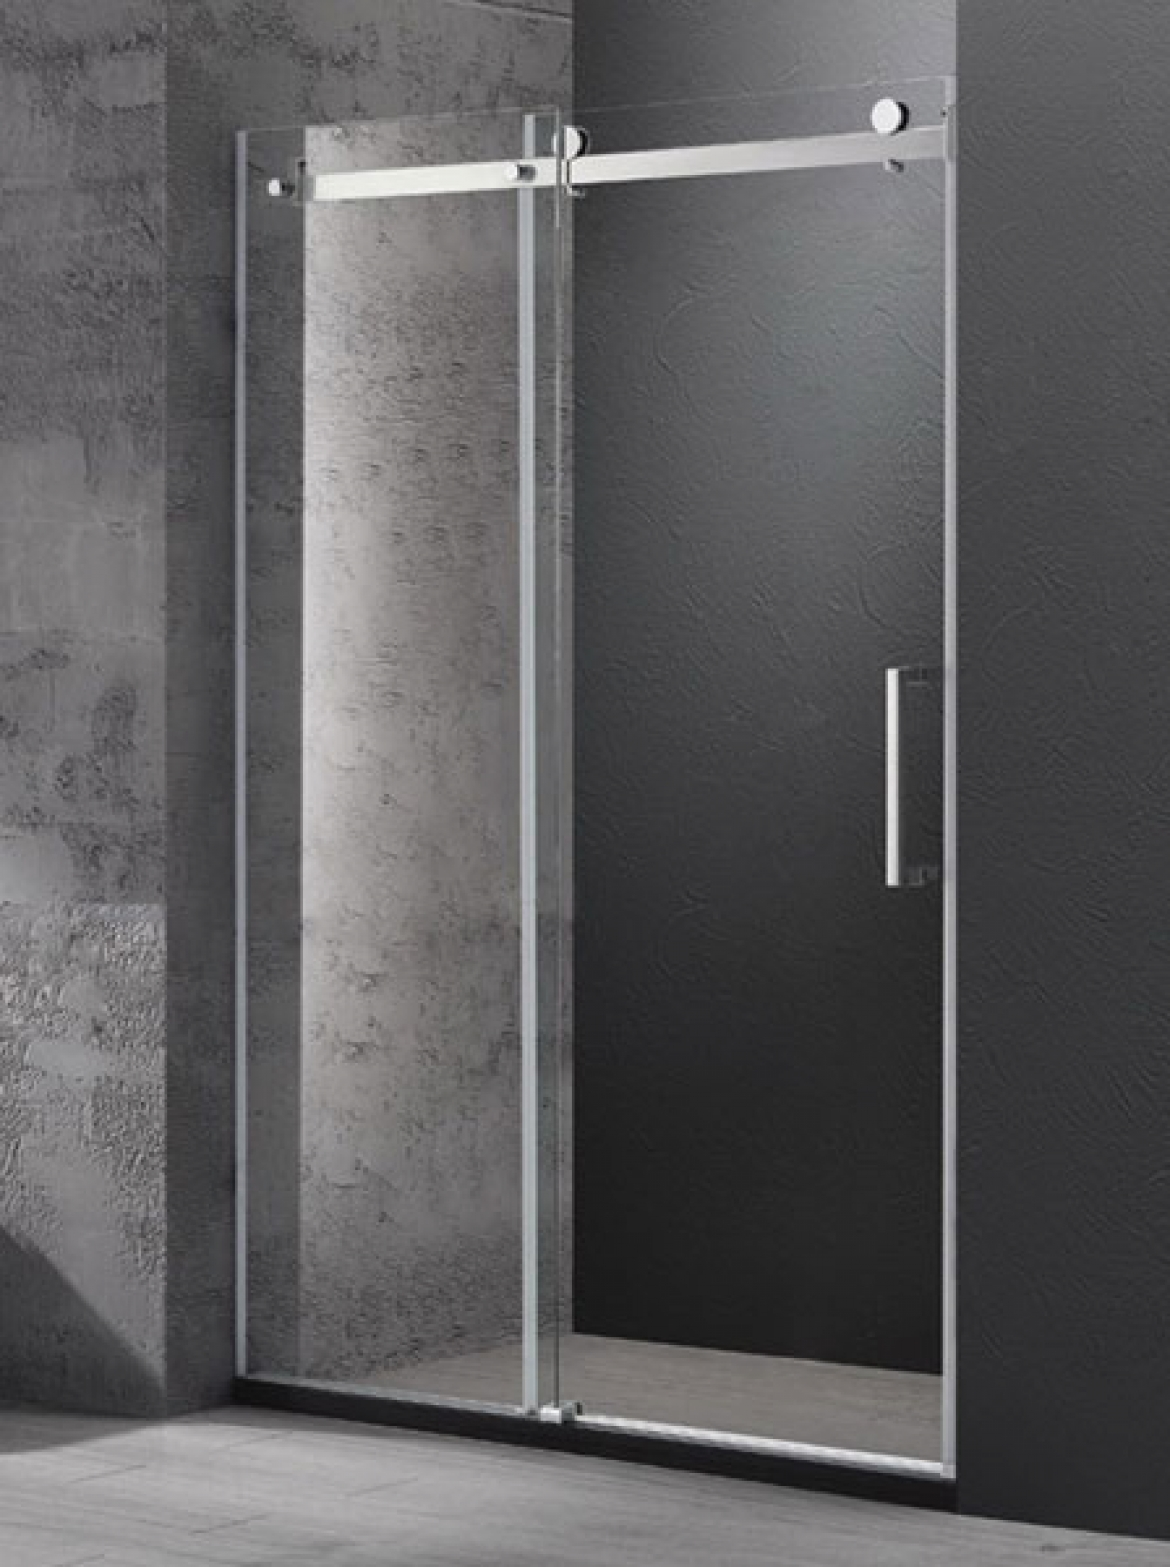 Wall to wall frameless sliding shower screen [1600 x 1950 mm]